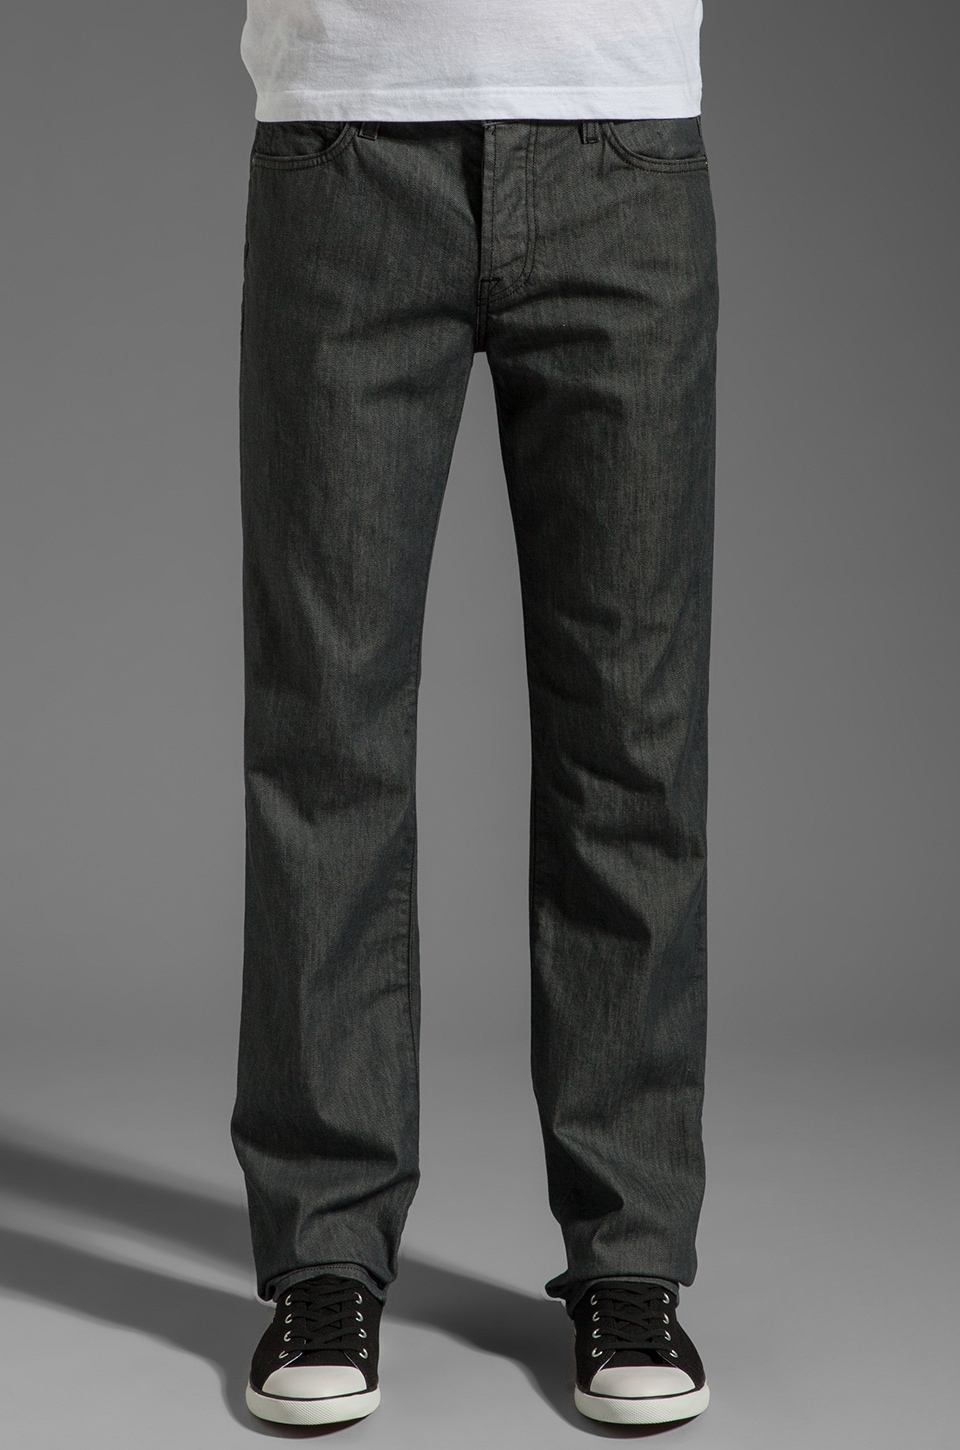 7 For All Mankind The Standard in Clean Grey